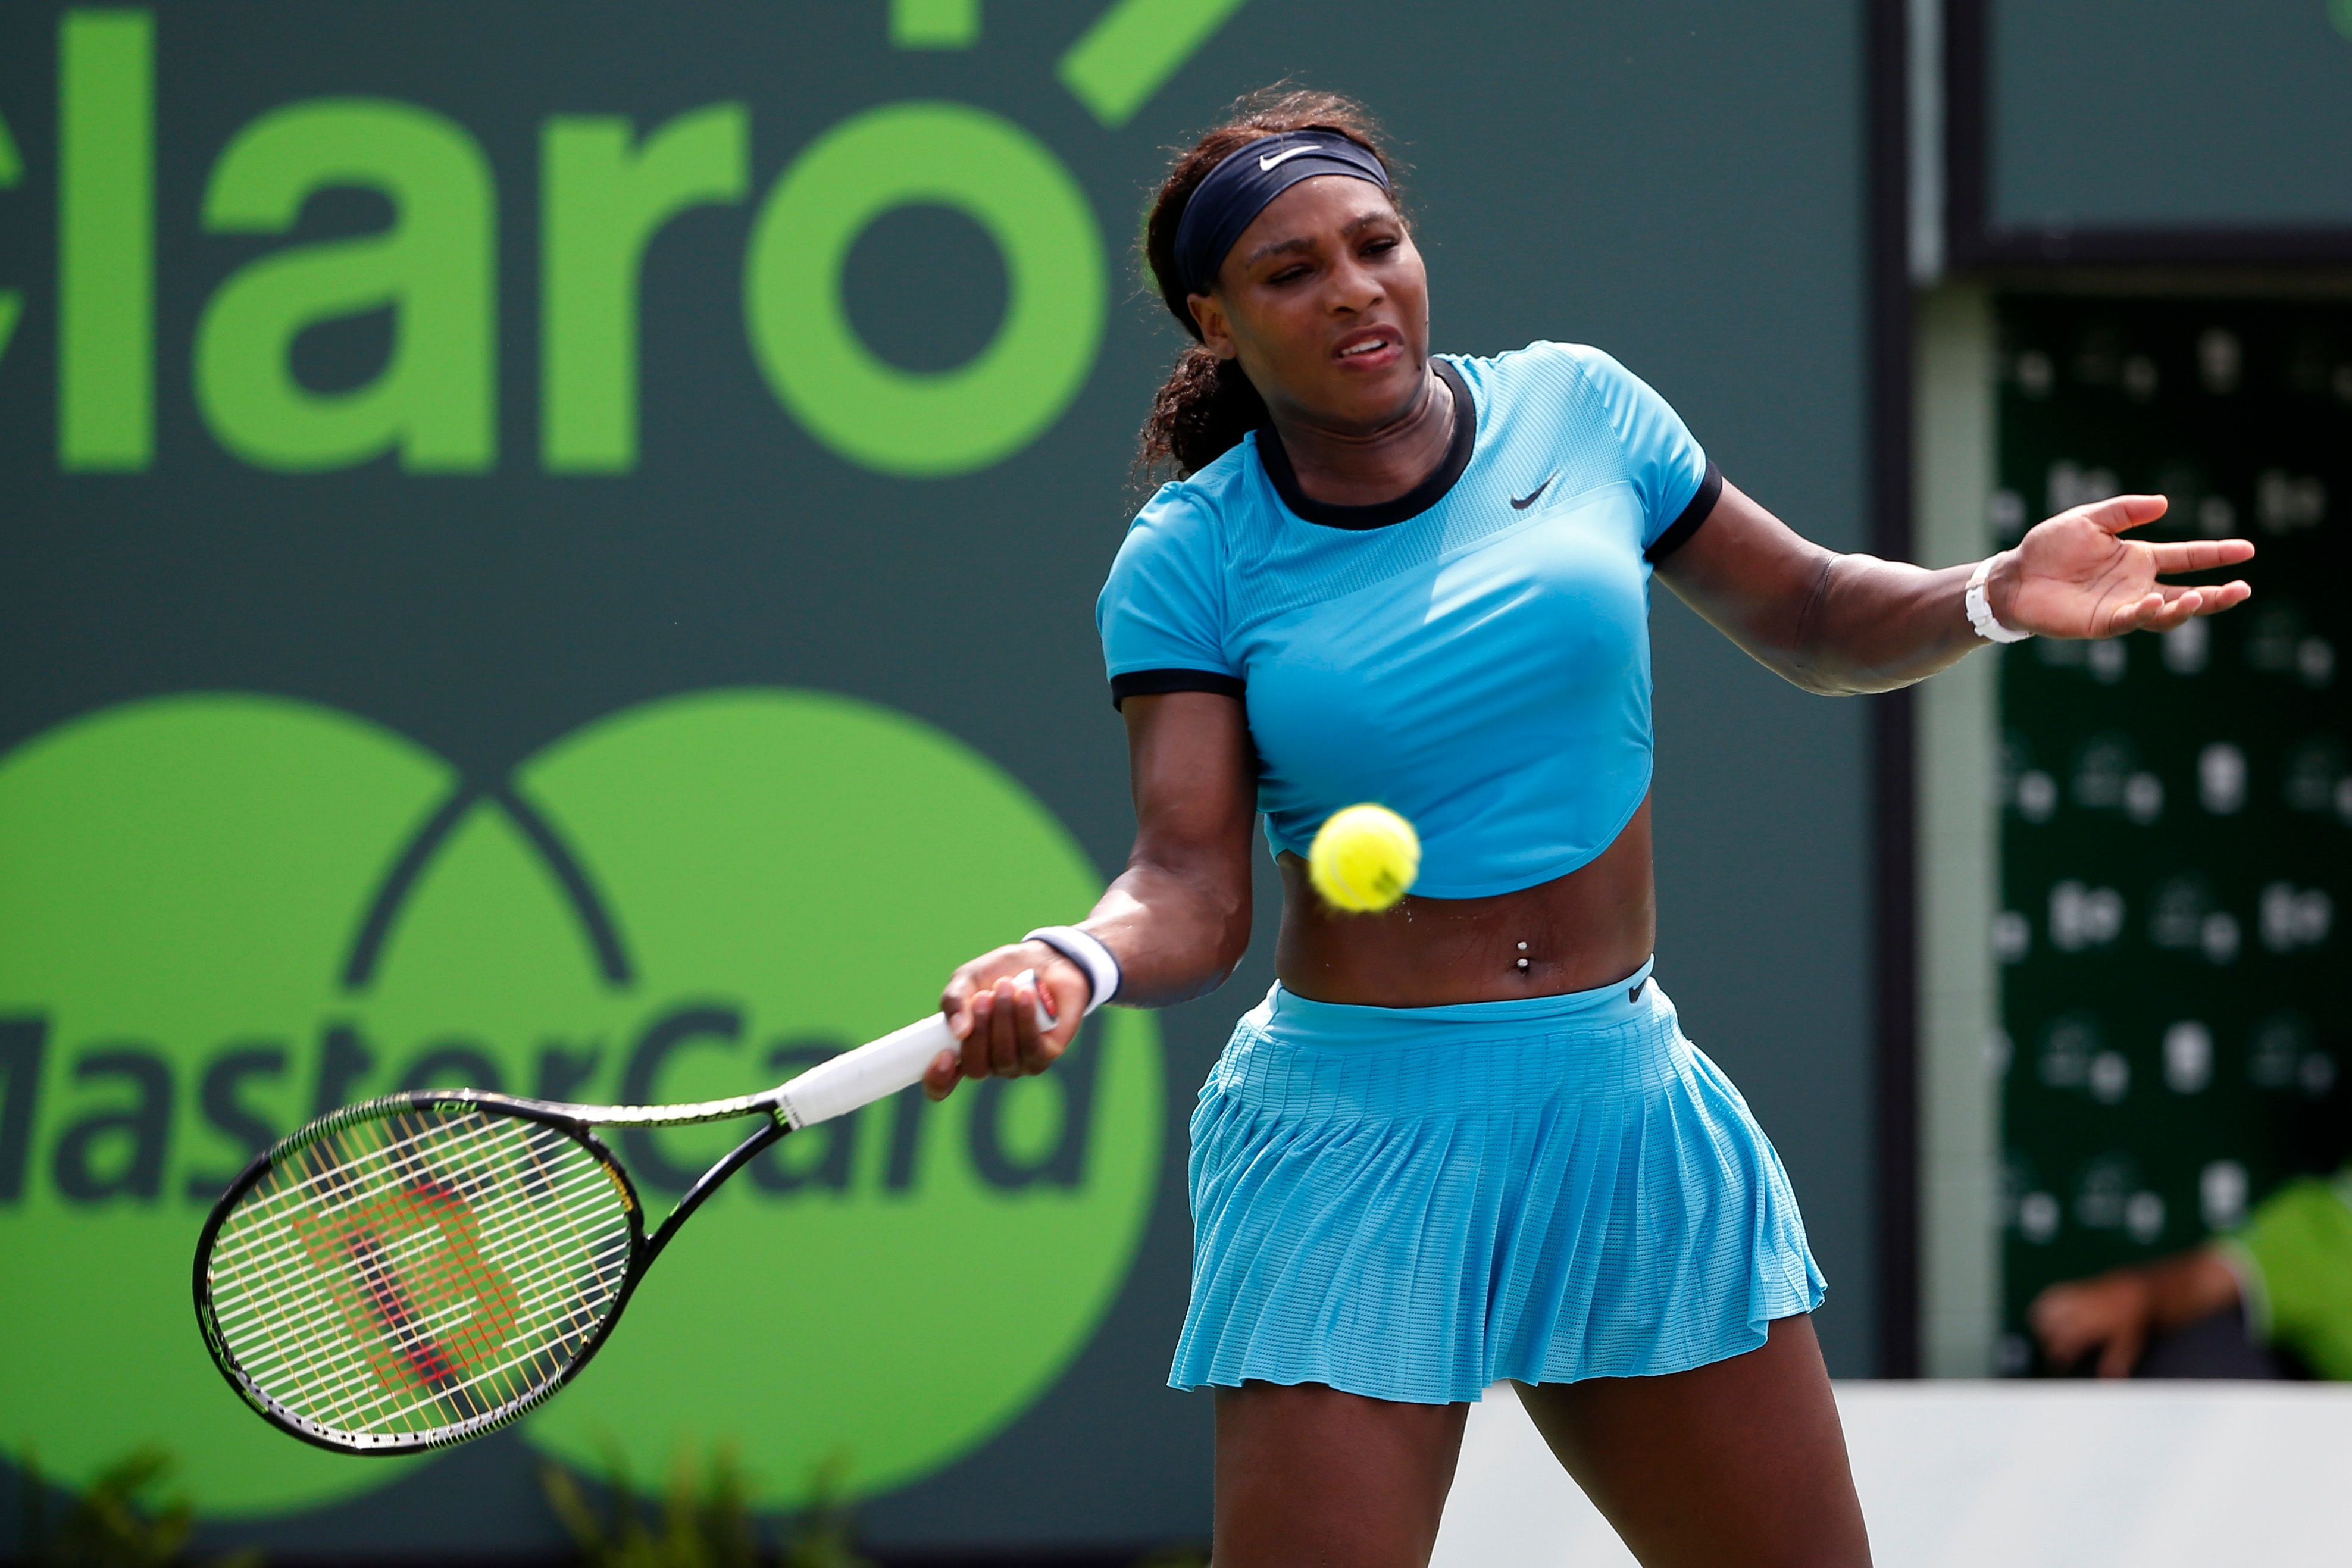 Coach says Serena Williams 'clearly came back too early' but adds she can win French Open